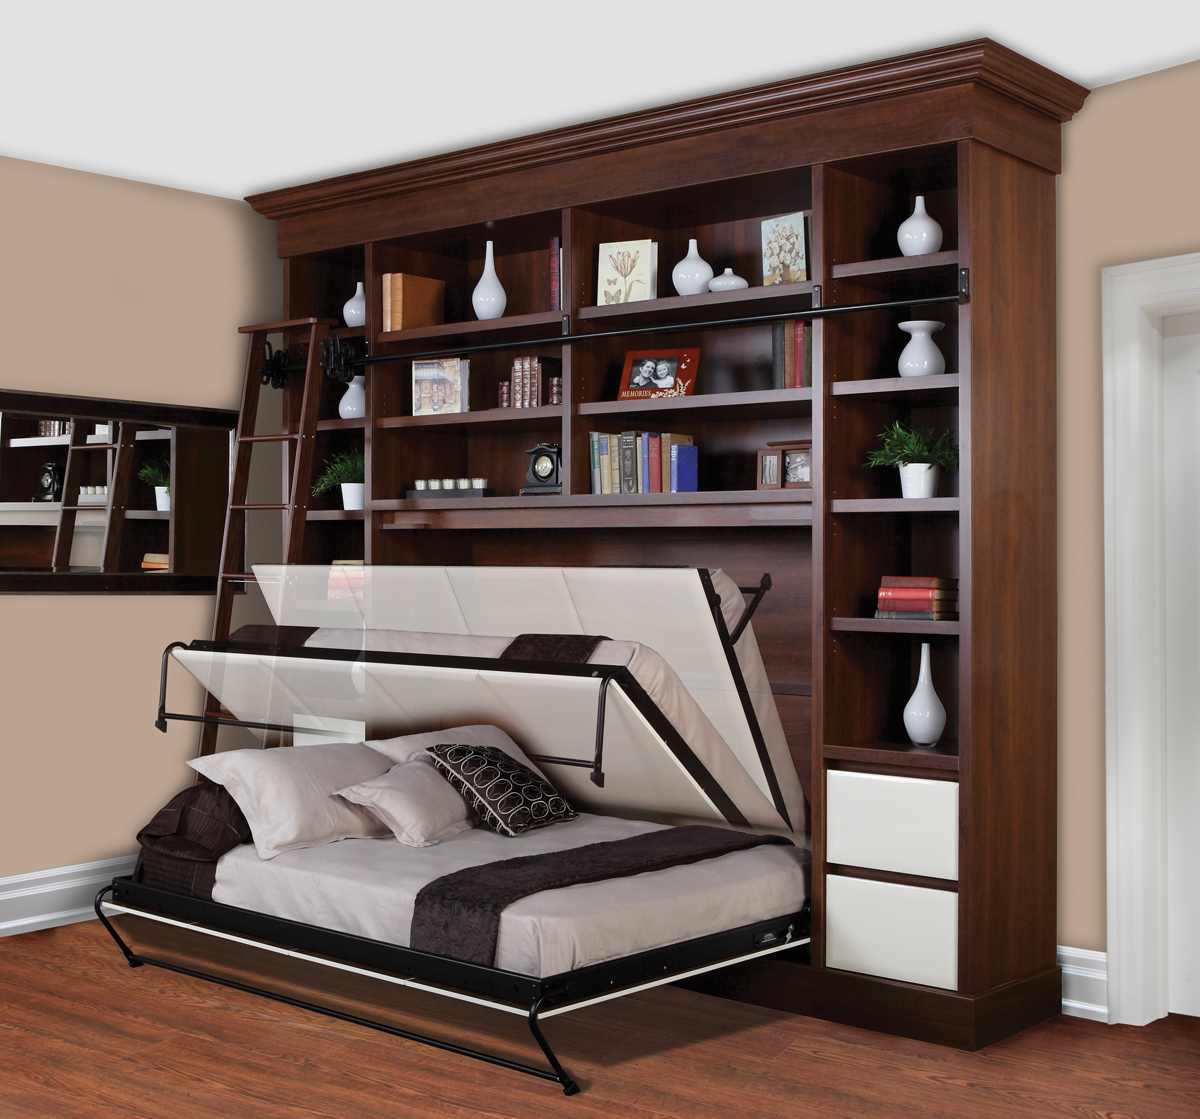 Gorgeous Wooden Storage Design With White Murphy Bed Kit Lowes On Wooden  Floor With Creamy Painted